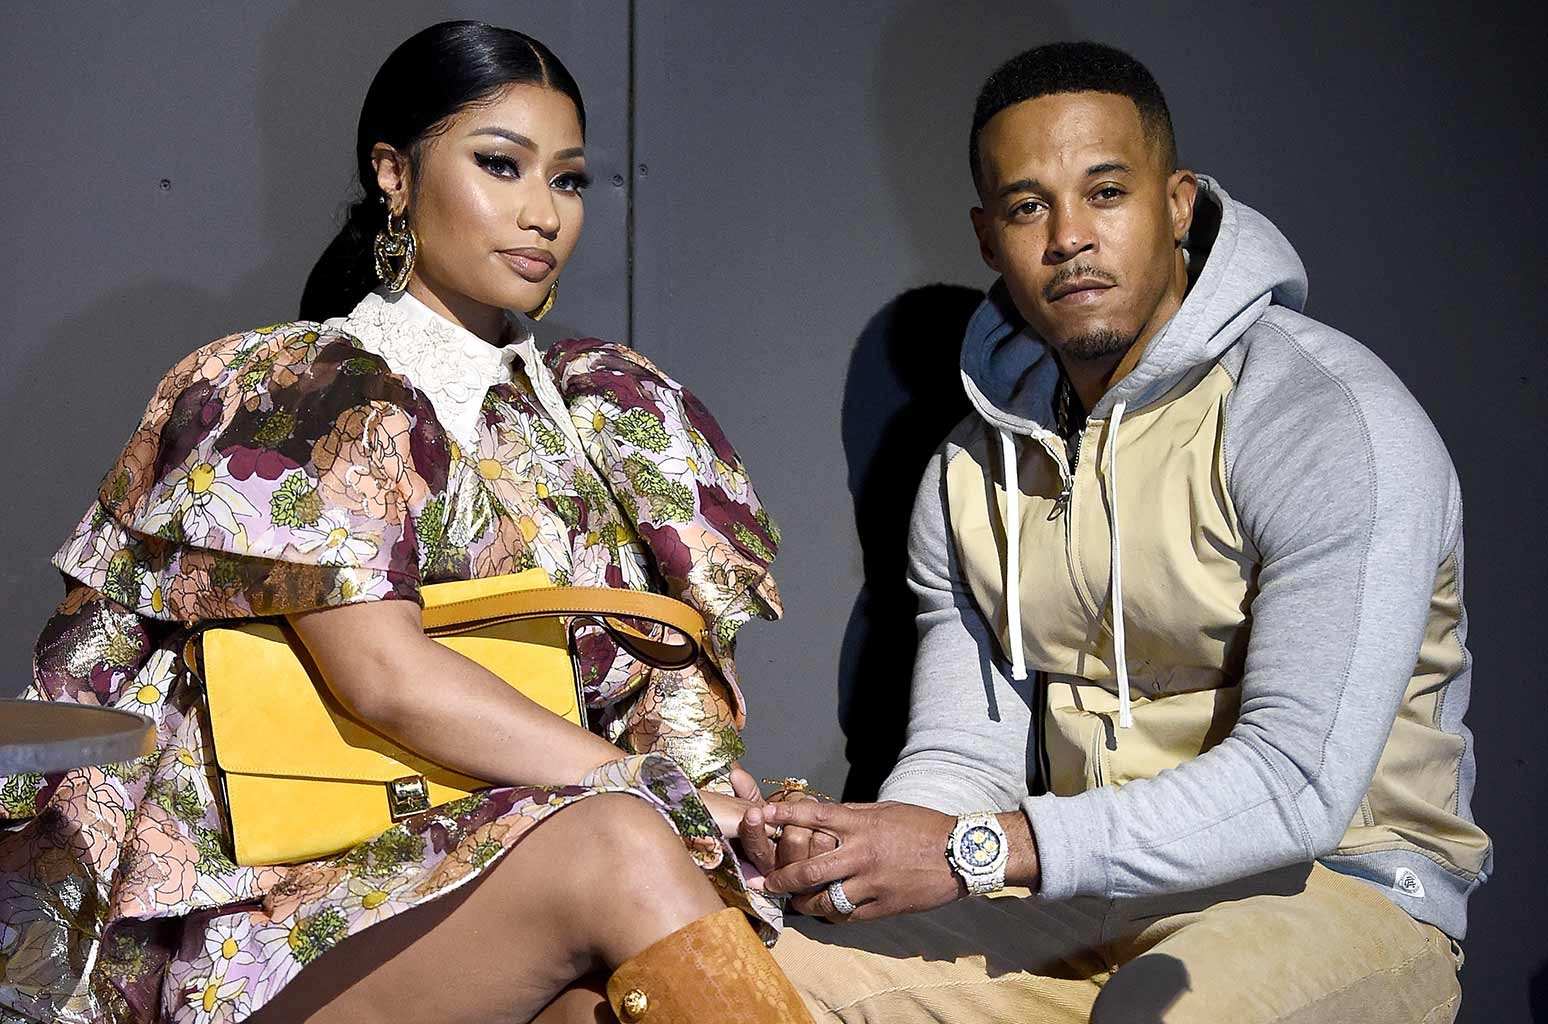 Nicki Minaj and kenneth Petty Sued By Sexual Assault Victim